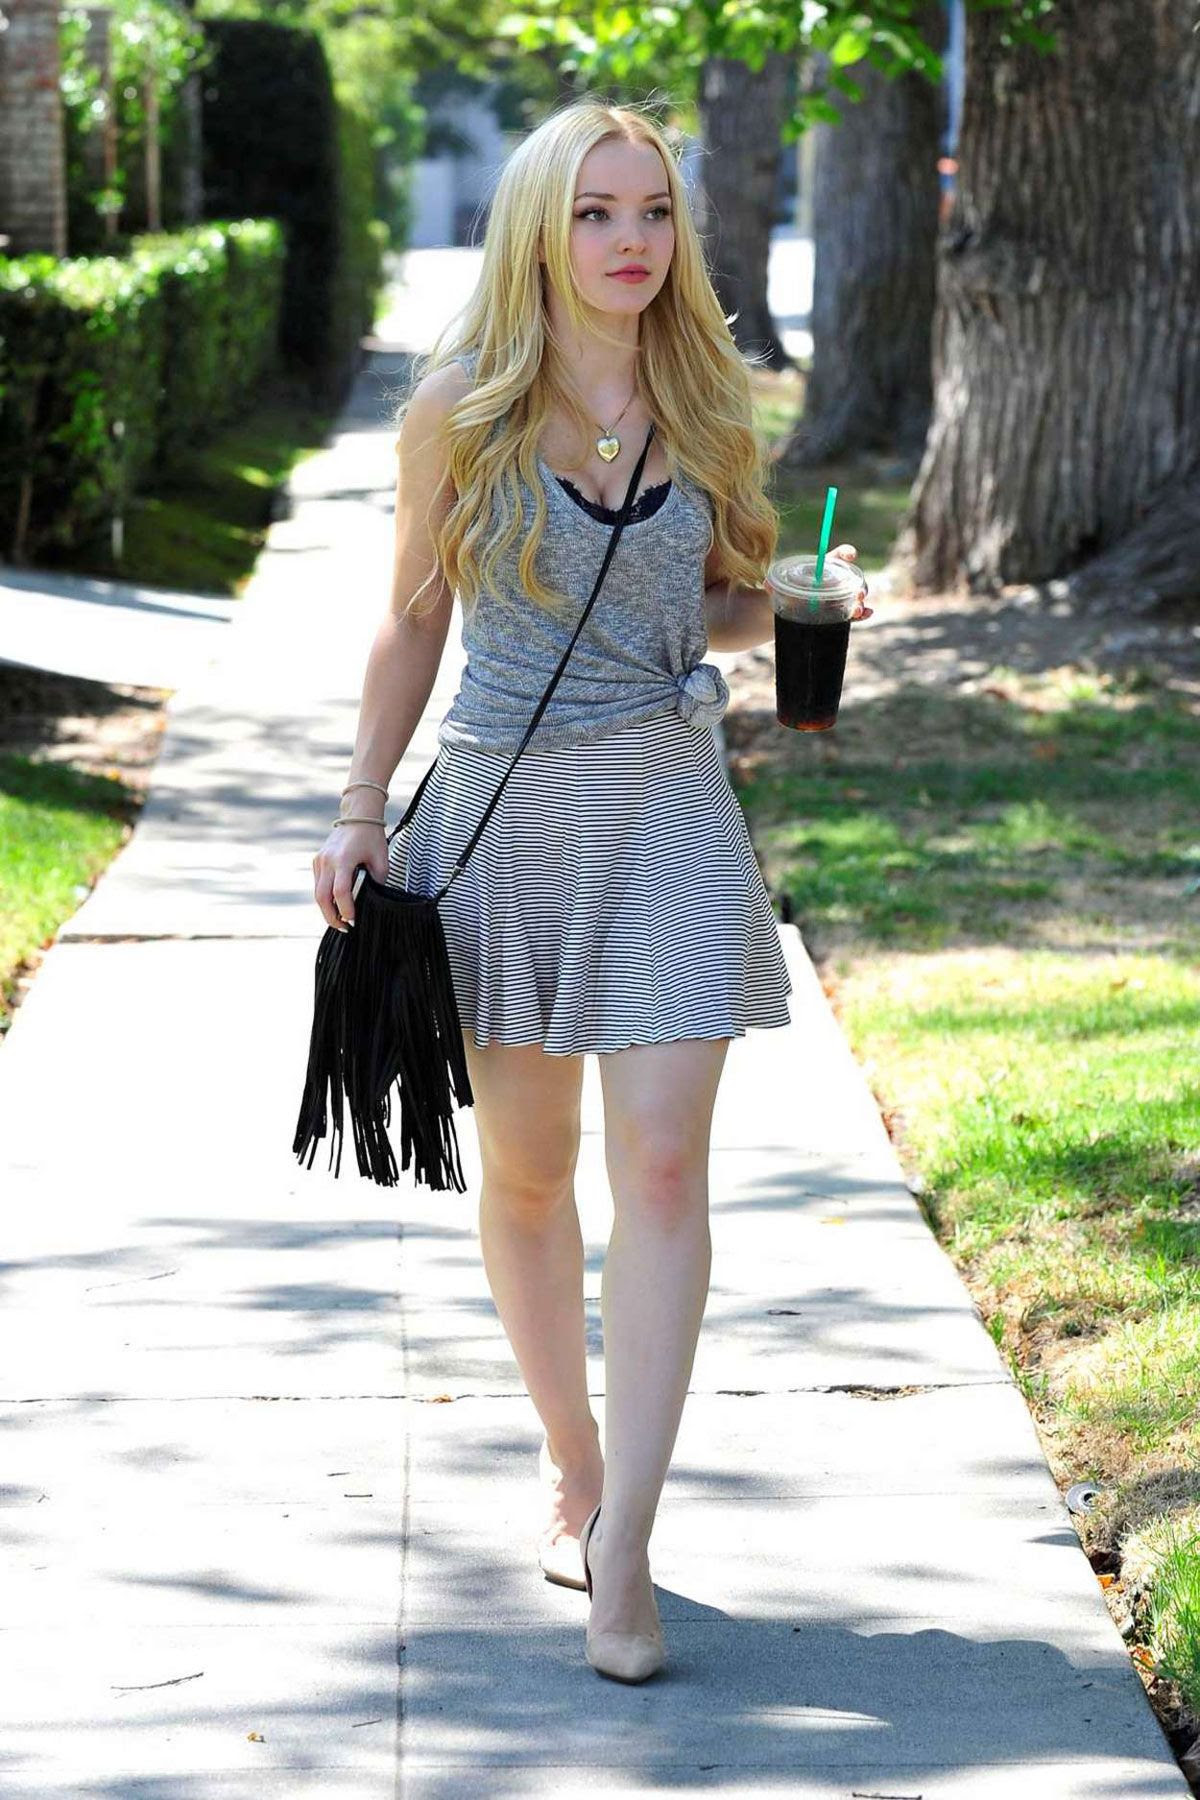 DOVE CAMERON in Skirt Out and About in Beverly Hills 10/14/2015